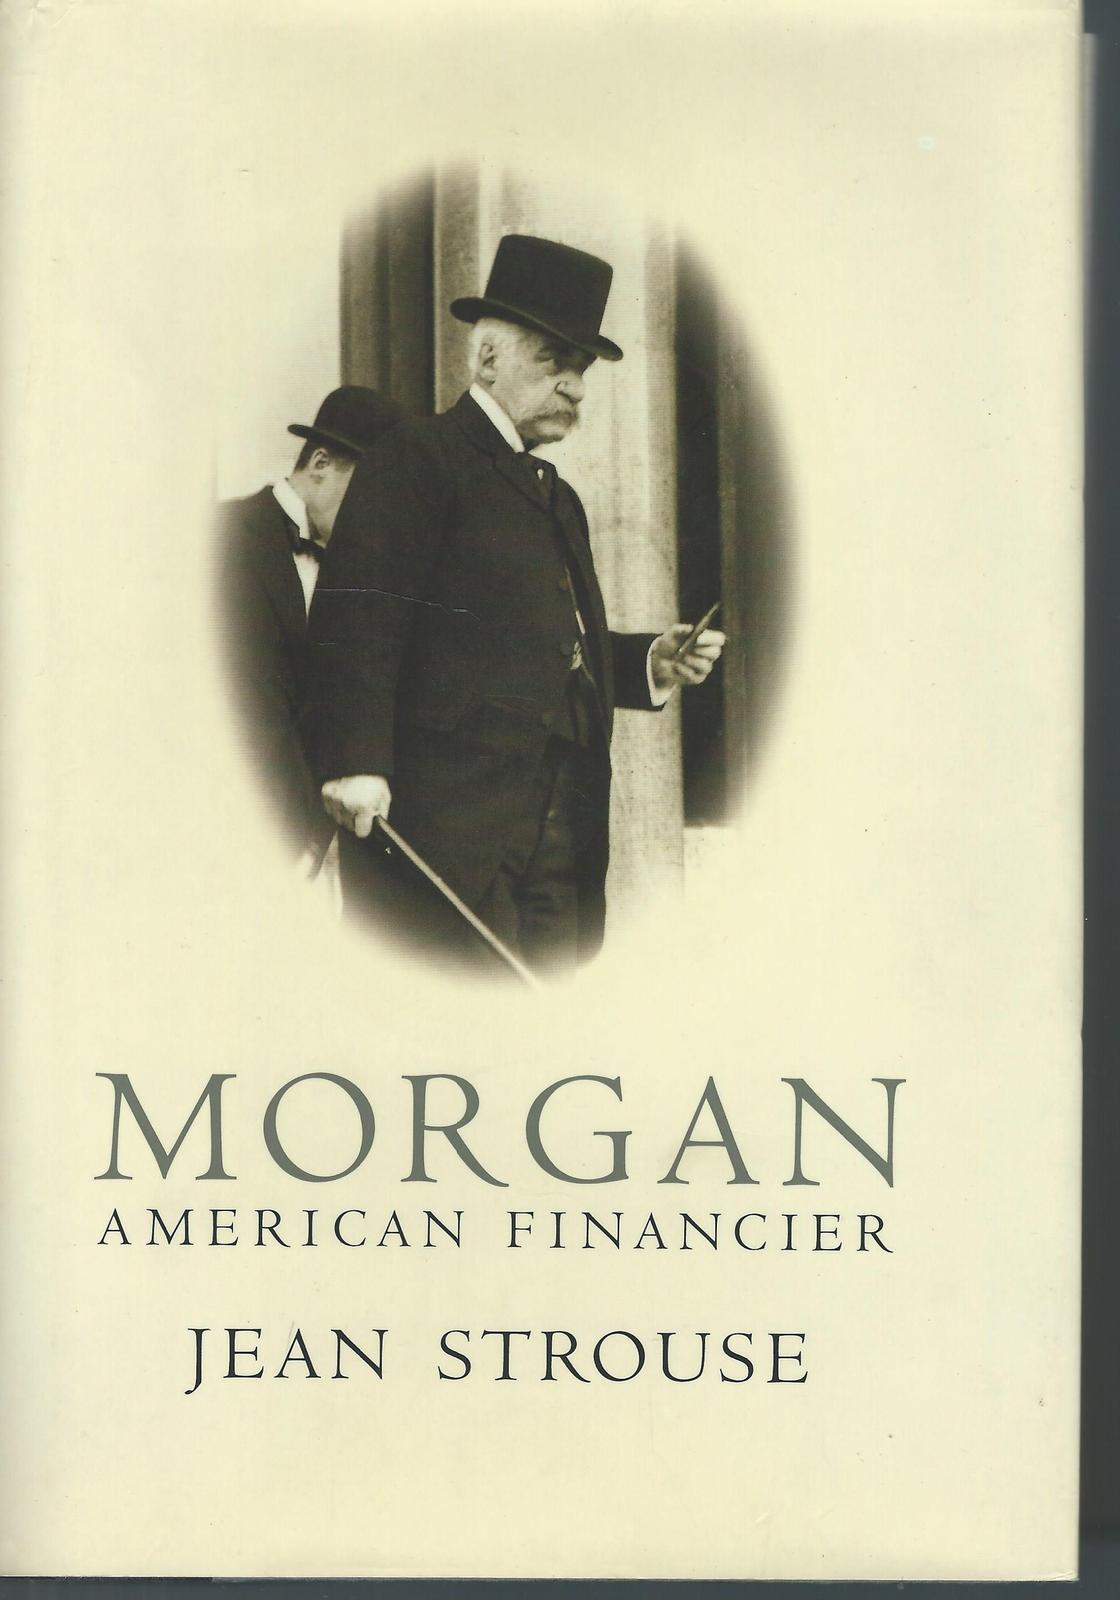 Morgan: American Financier--Jean Strouse, BUSINESS,HCDJ;HARVILL PRESS;796 PAGES